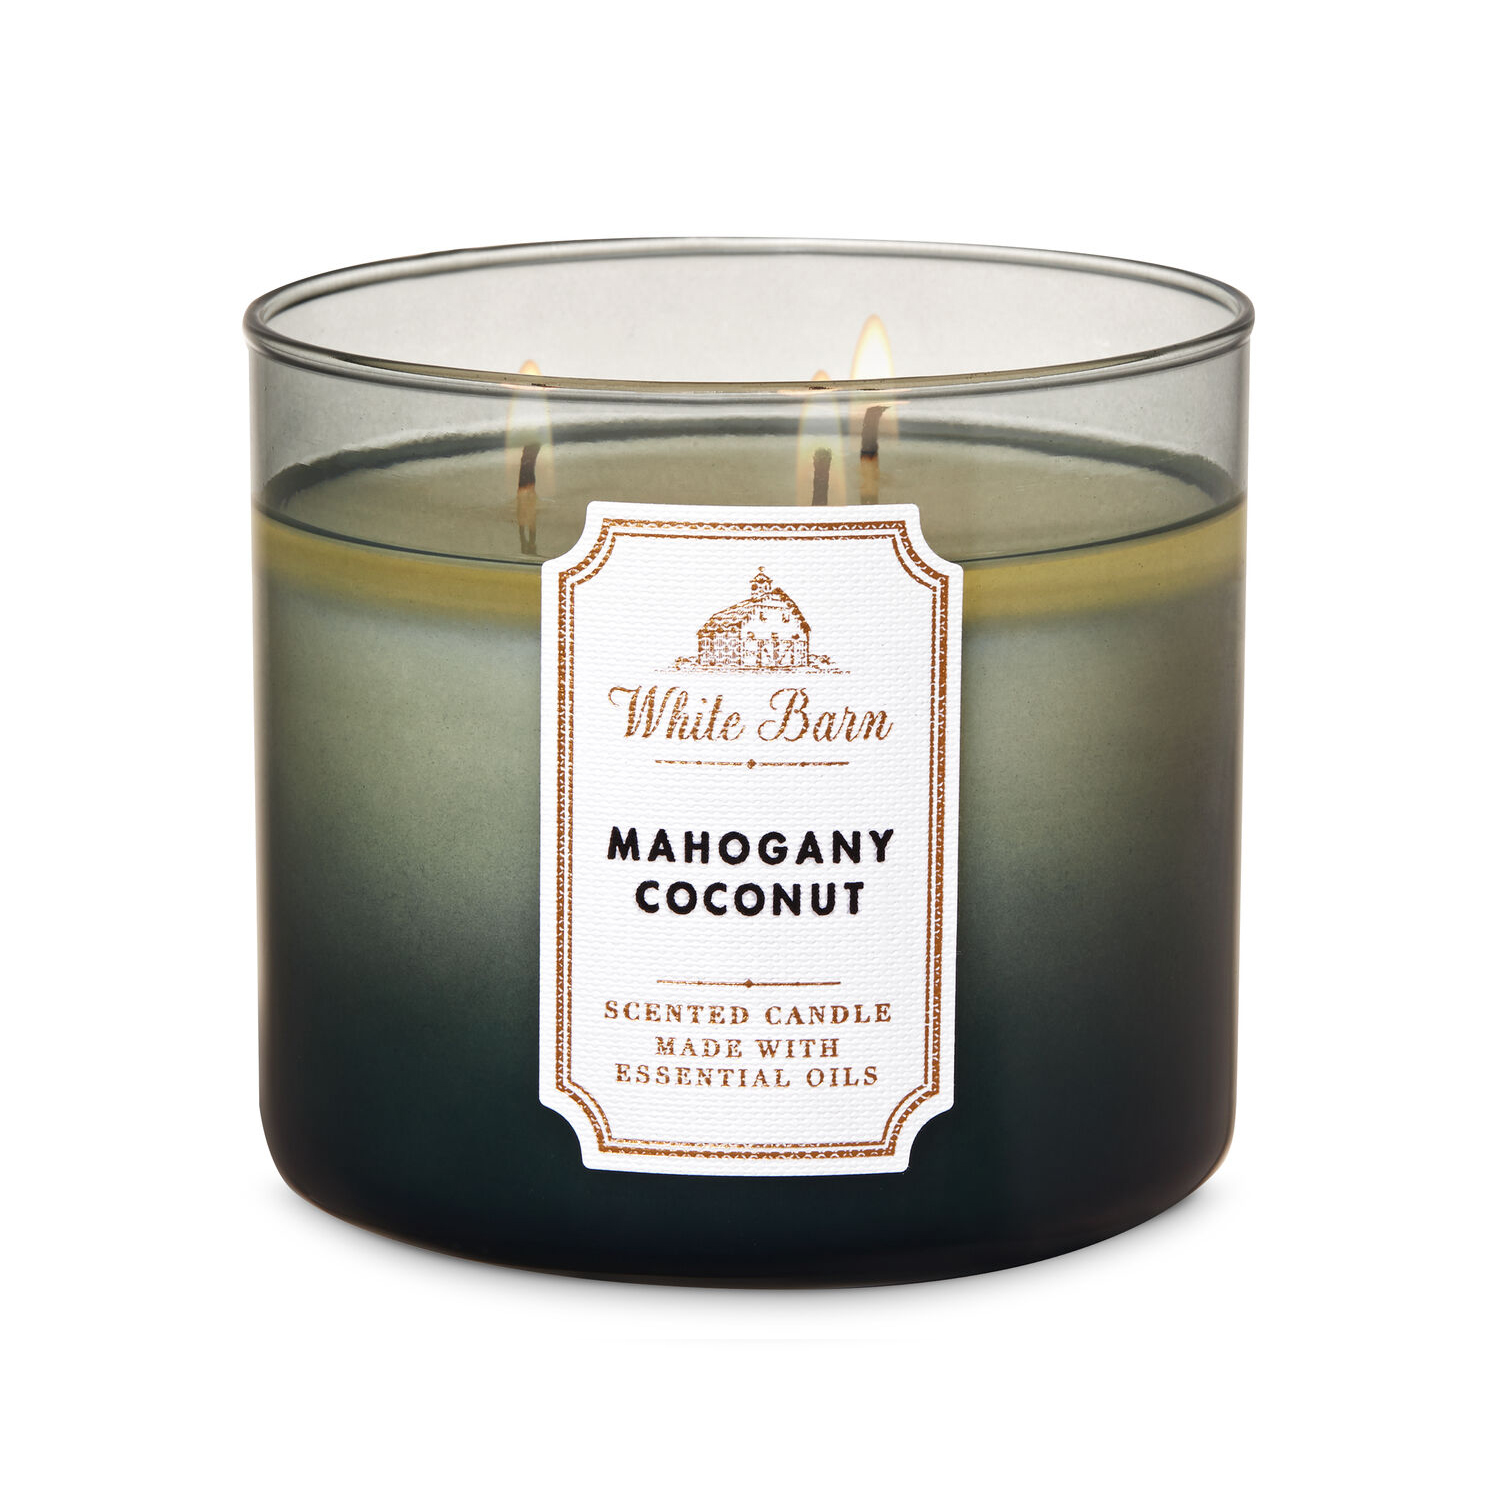 1 Bath /& Body Works MAHOGANY COCONUT Large 3-Wick Scented Glass Candle 14.5oz